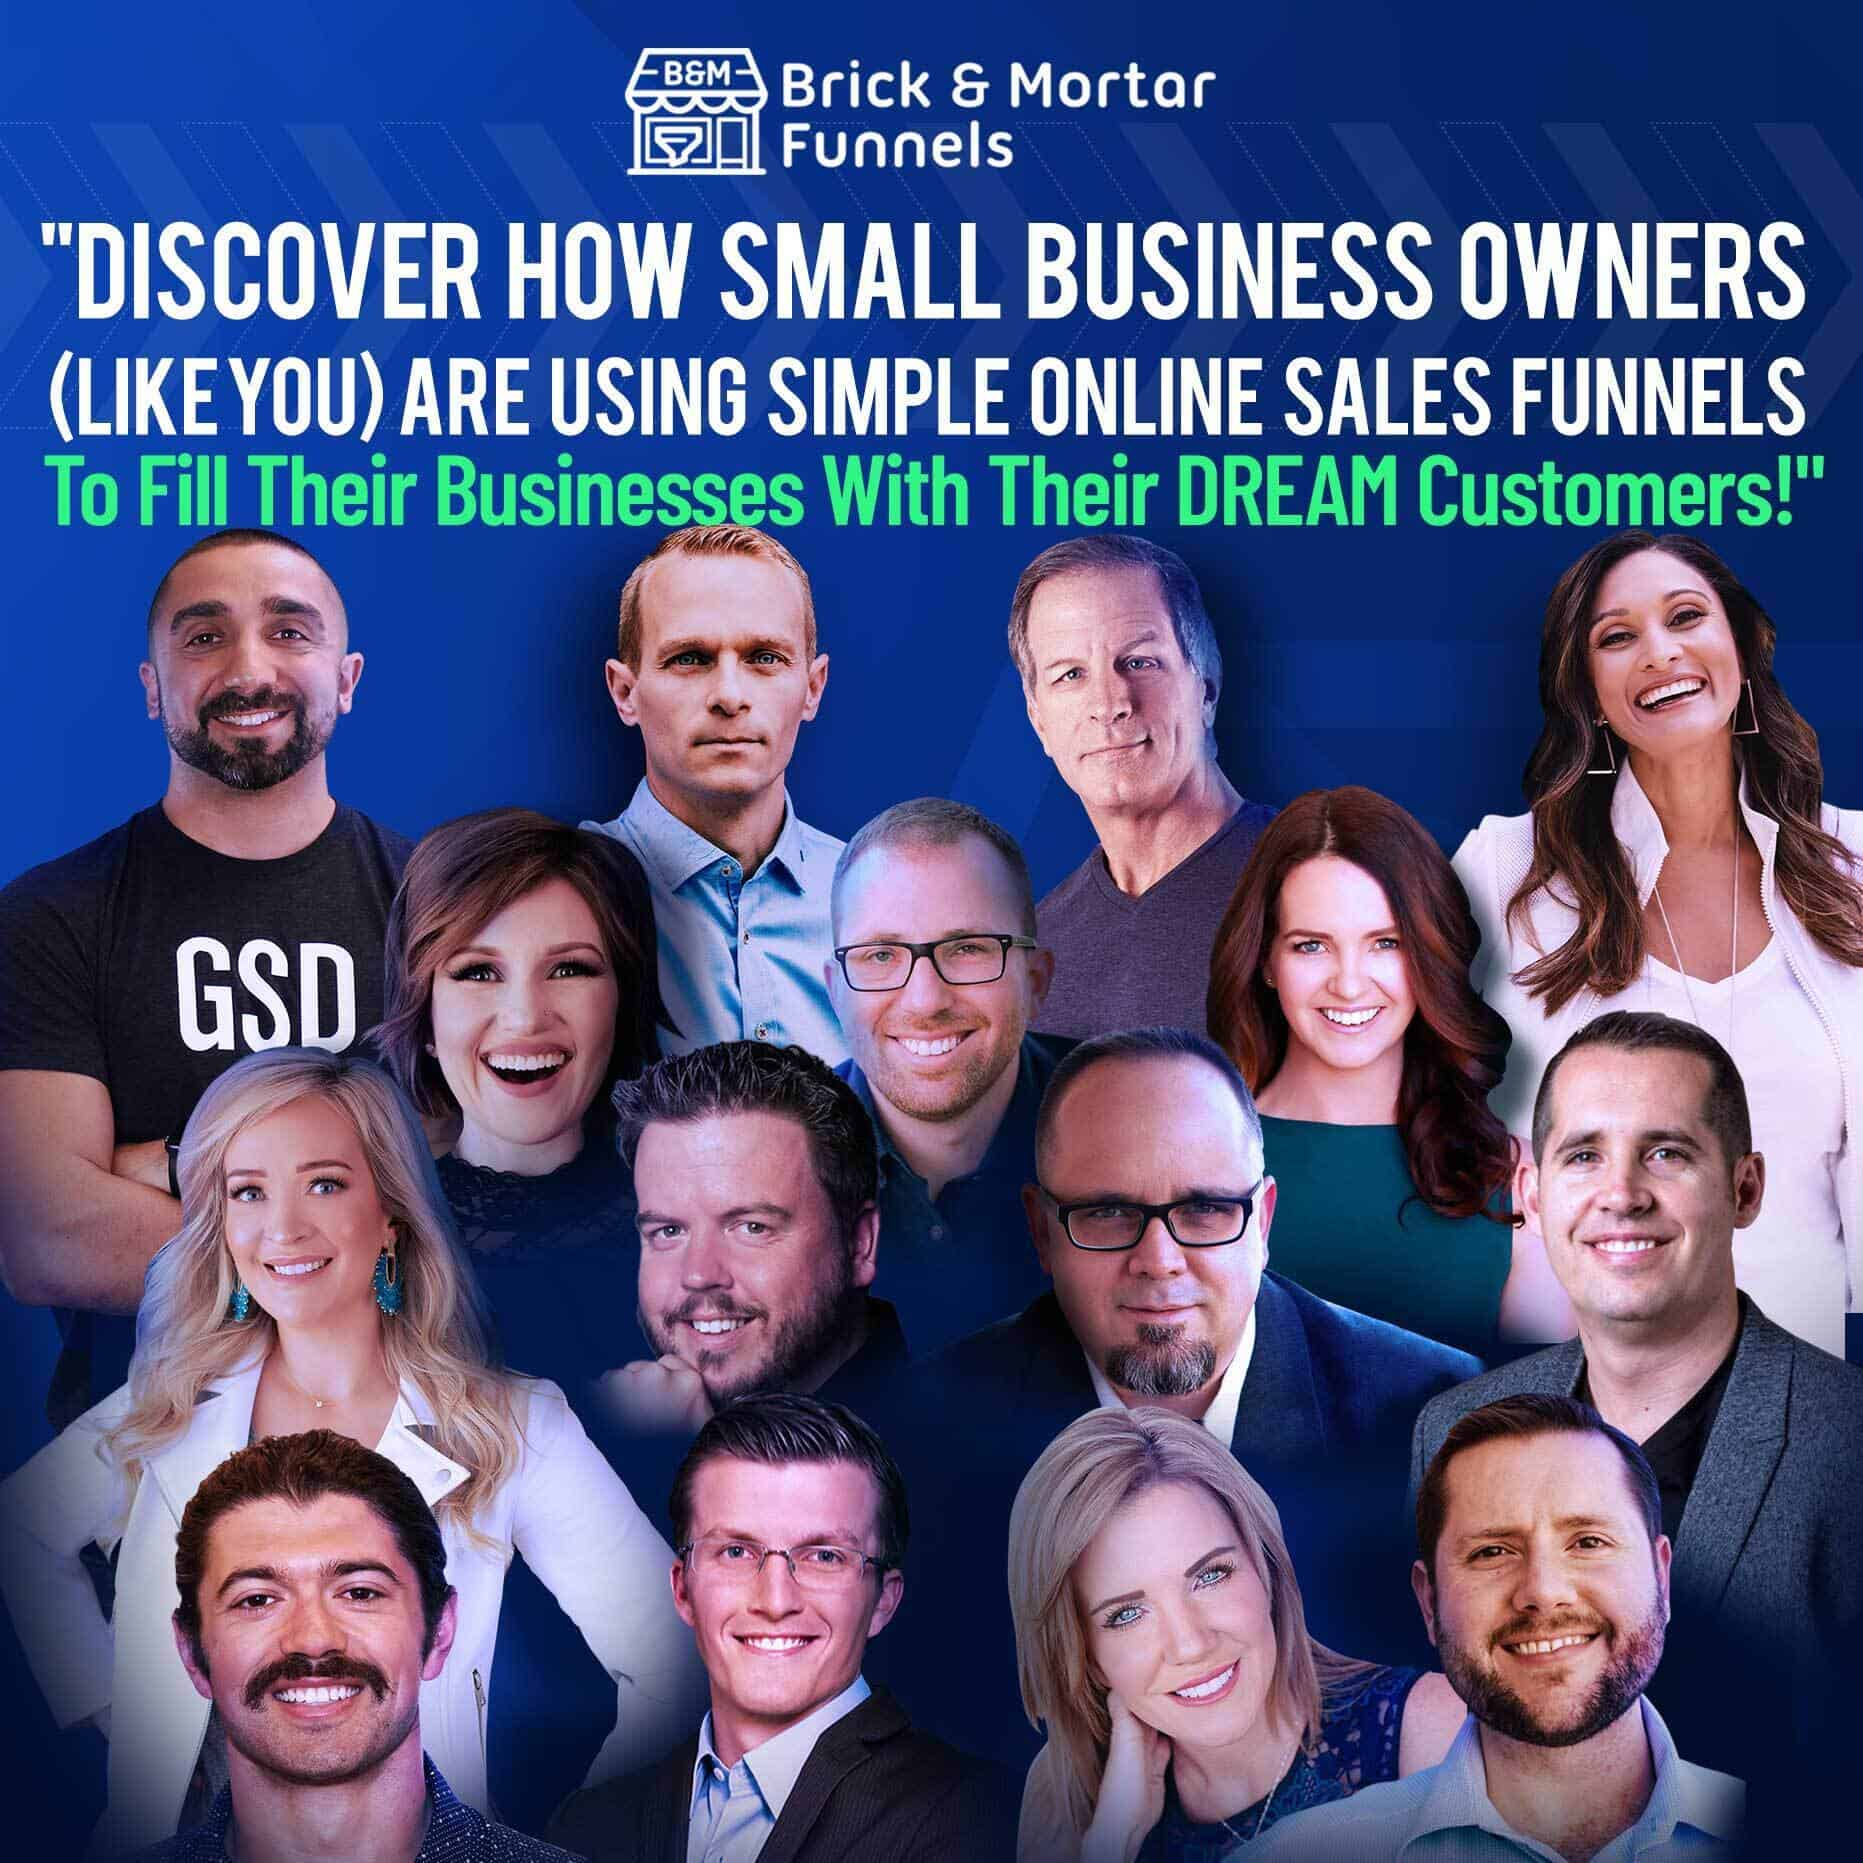 How To Win The ClickFunnels Dream Car 6 how To Win The ClickFunnels Dream Car